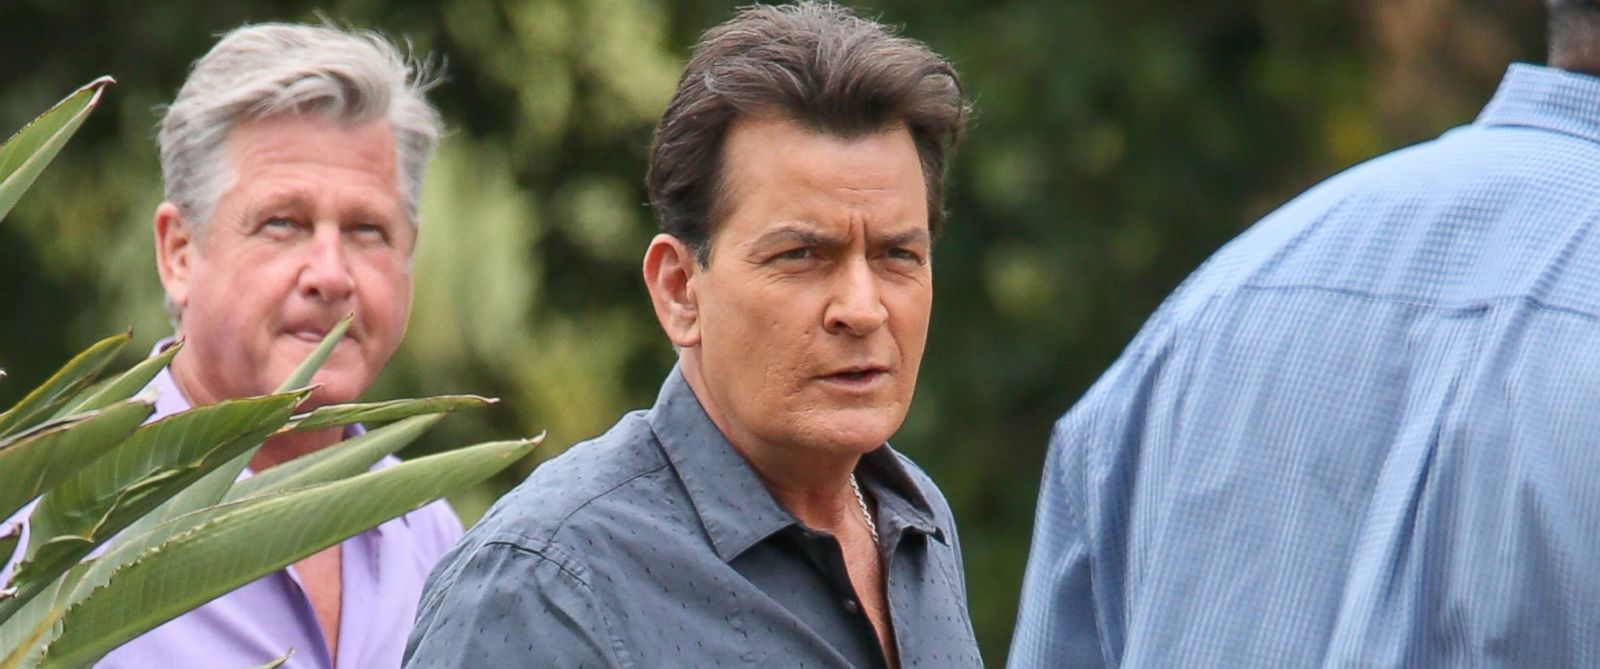 charlie sheen effect' seen in online search for hiv symptoms and, Skeleton